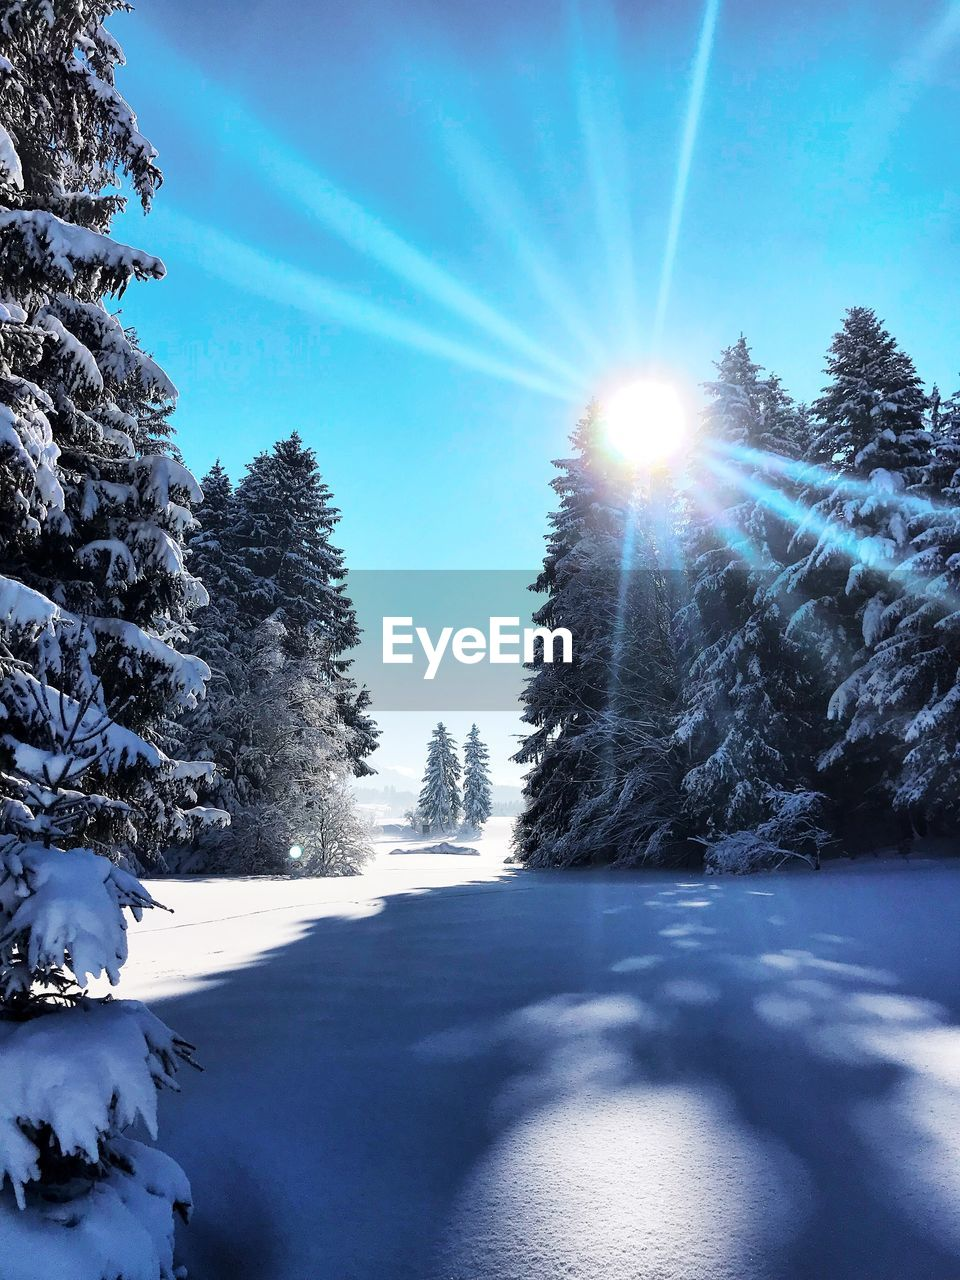 cold temperature, winter, snow, tree, plant, sky, sunlight, sunbeam, beauty in nature, nature, sun, scenics - nature, tranquility, lens flare, covering, tranquil scene, day, no people, sunny, bright, outdoors, snowcapped mountain, powder snow